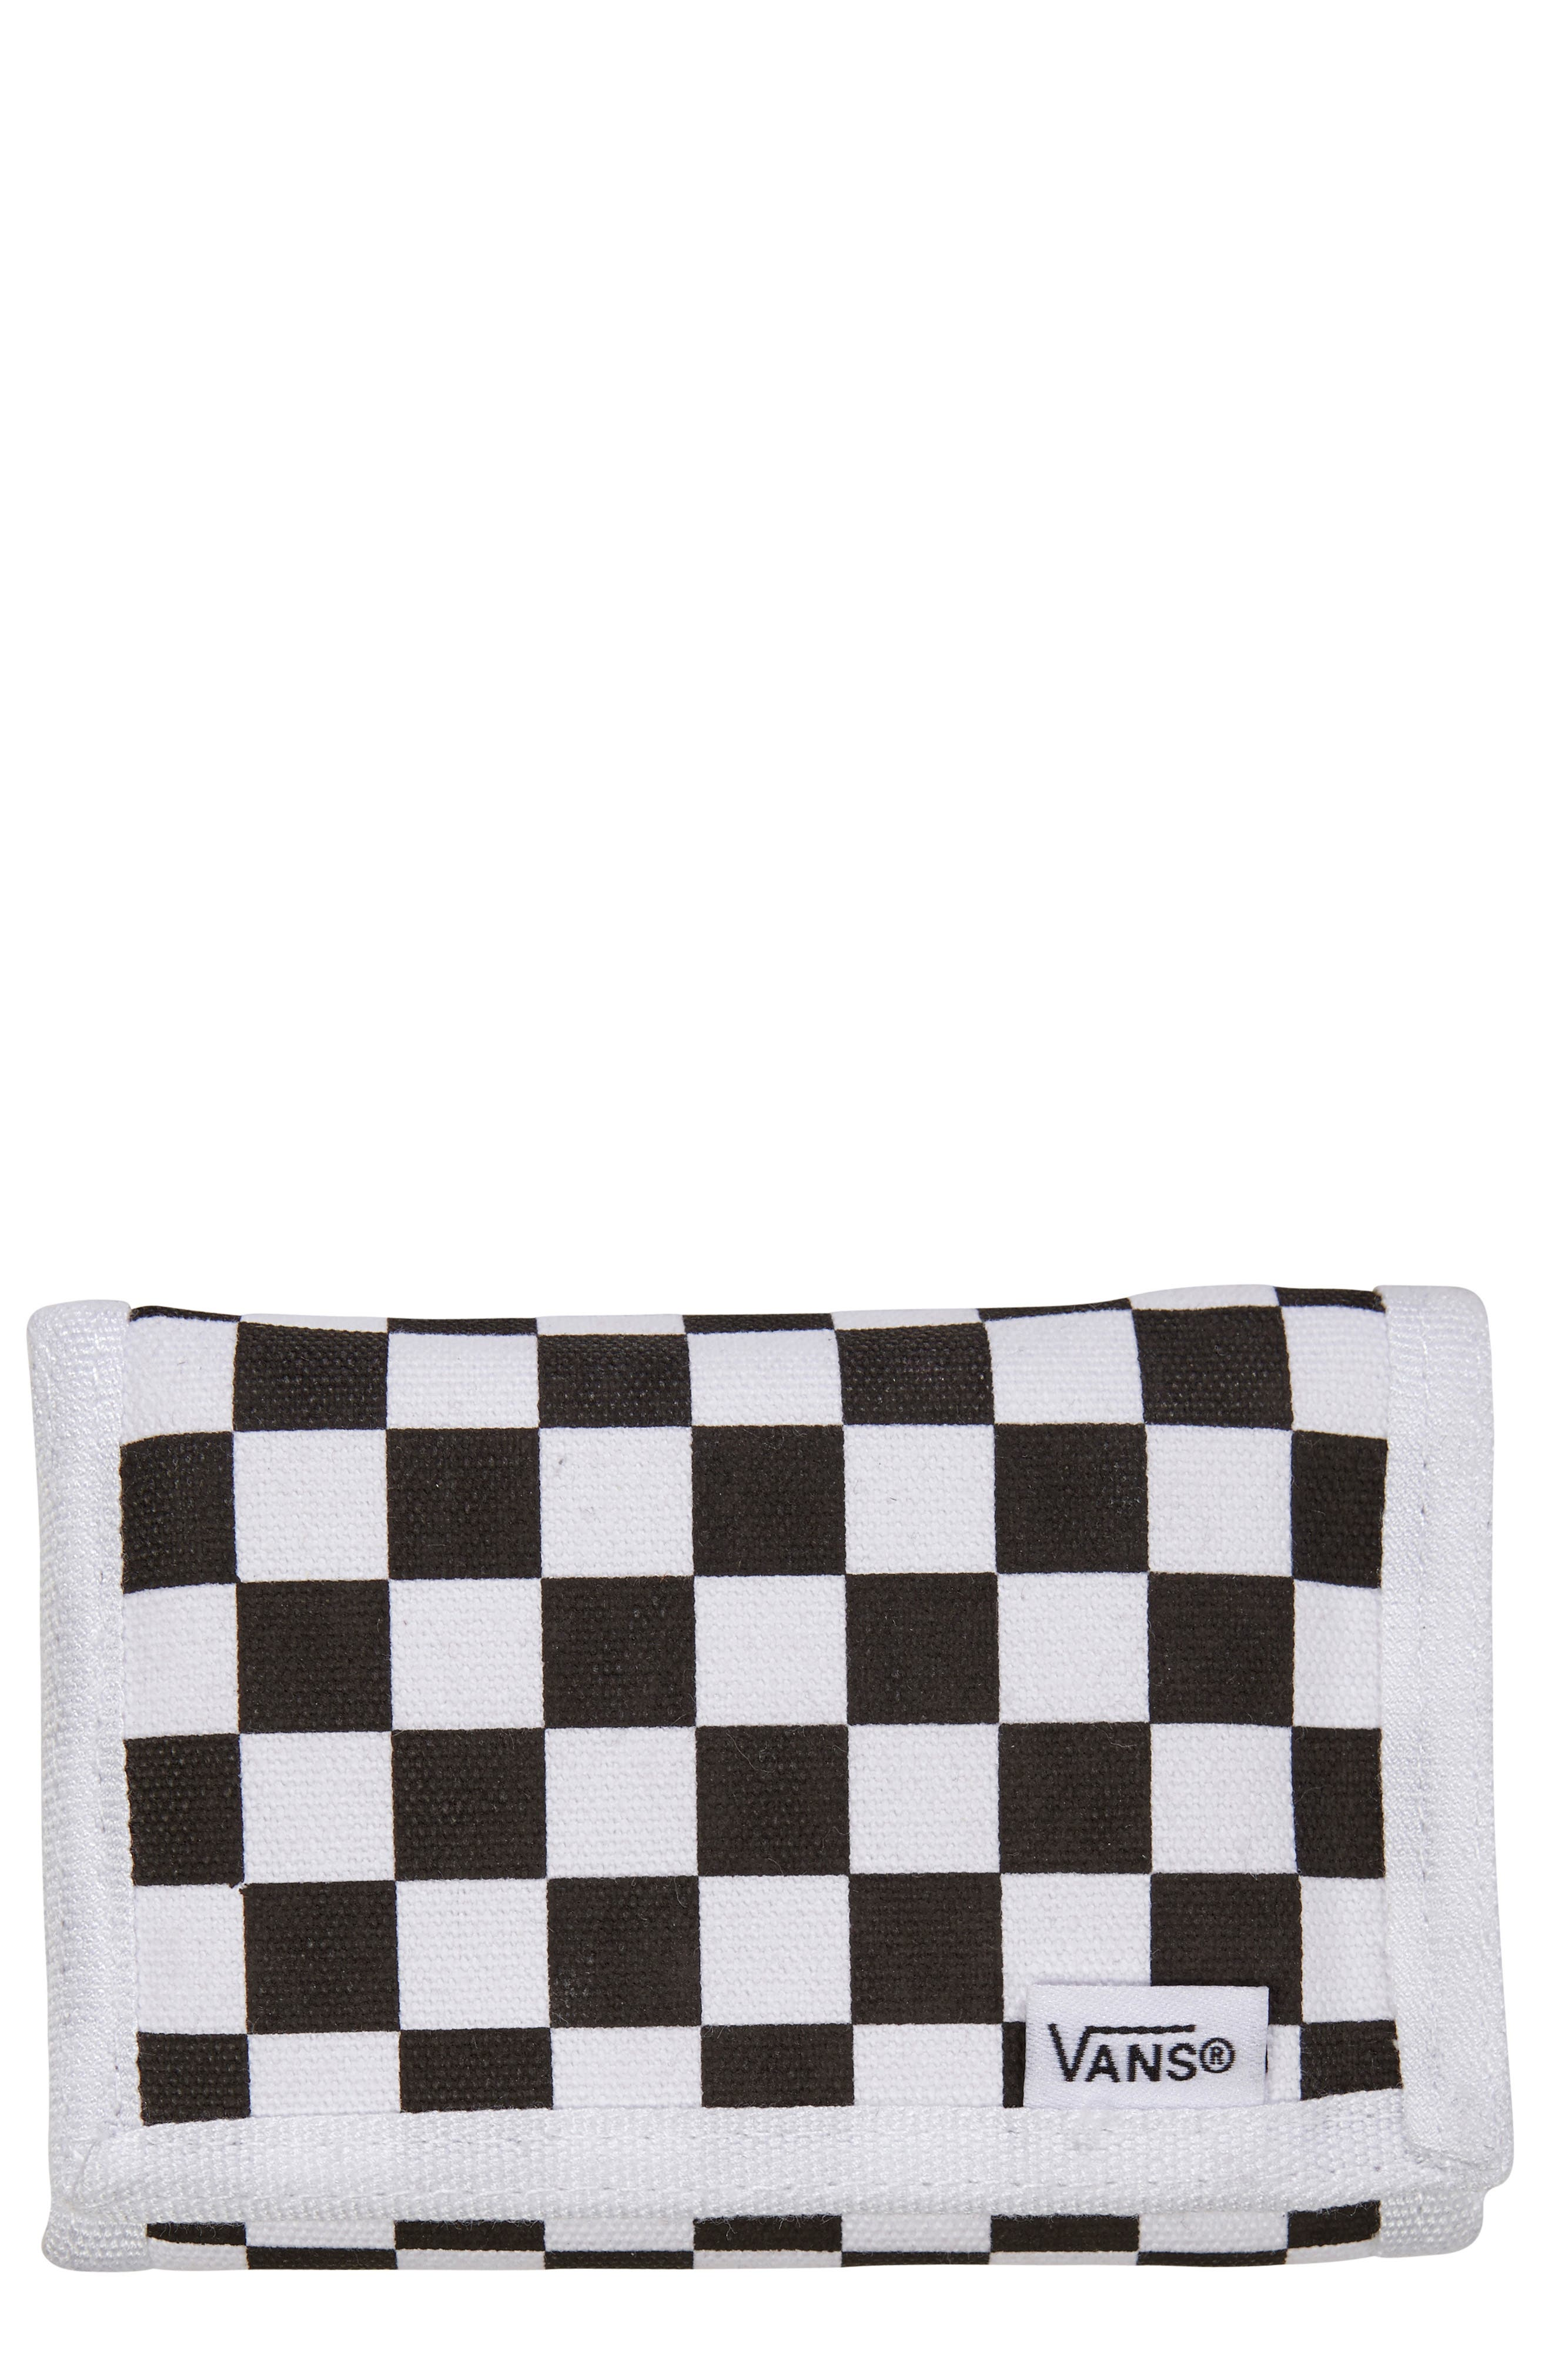 VANS 'Slipped' Checkered Wallet, Main, color, 001